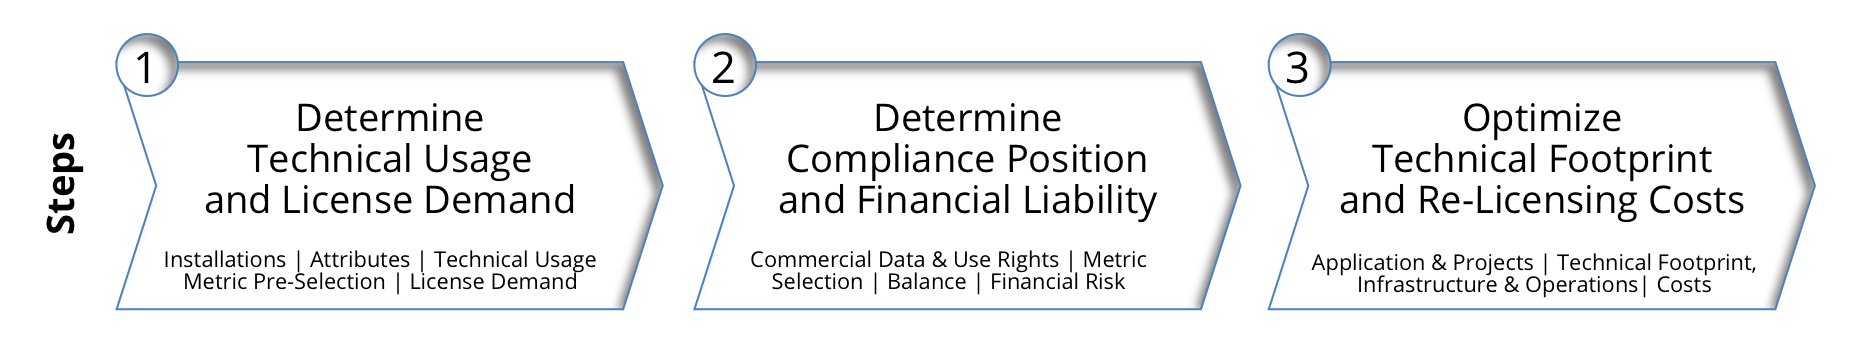 OMTCO - Internal Compliance Audit Of Oracle Database Products - Overview Of Steps